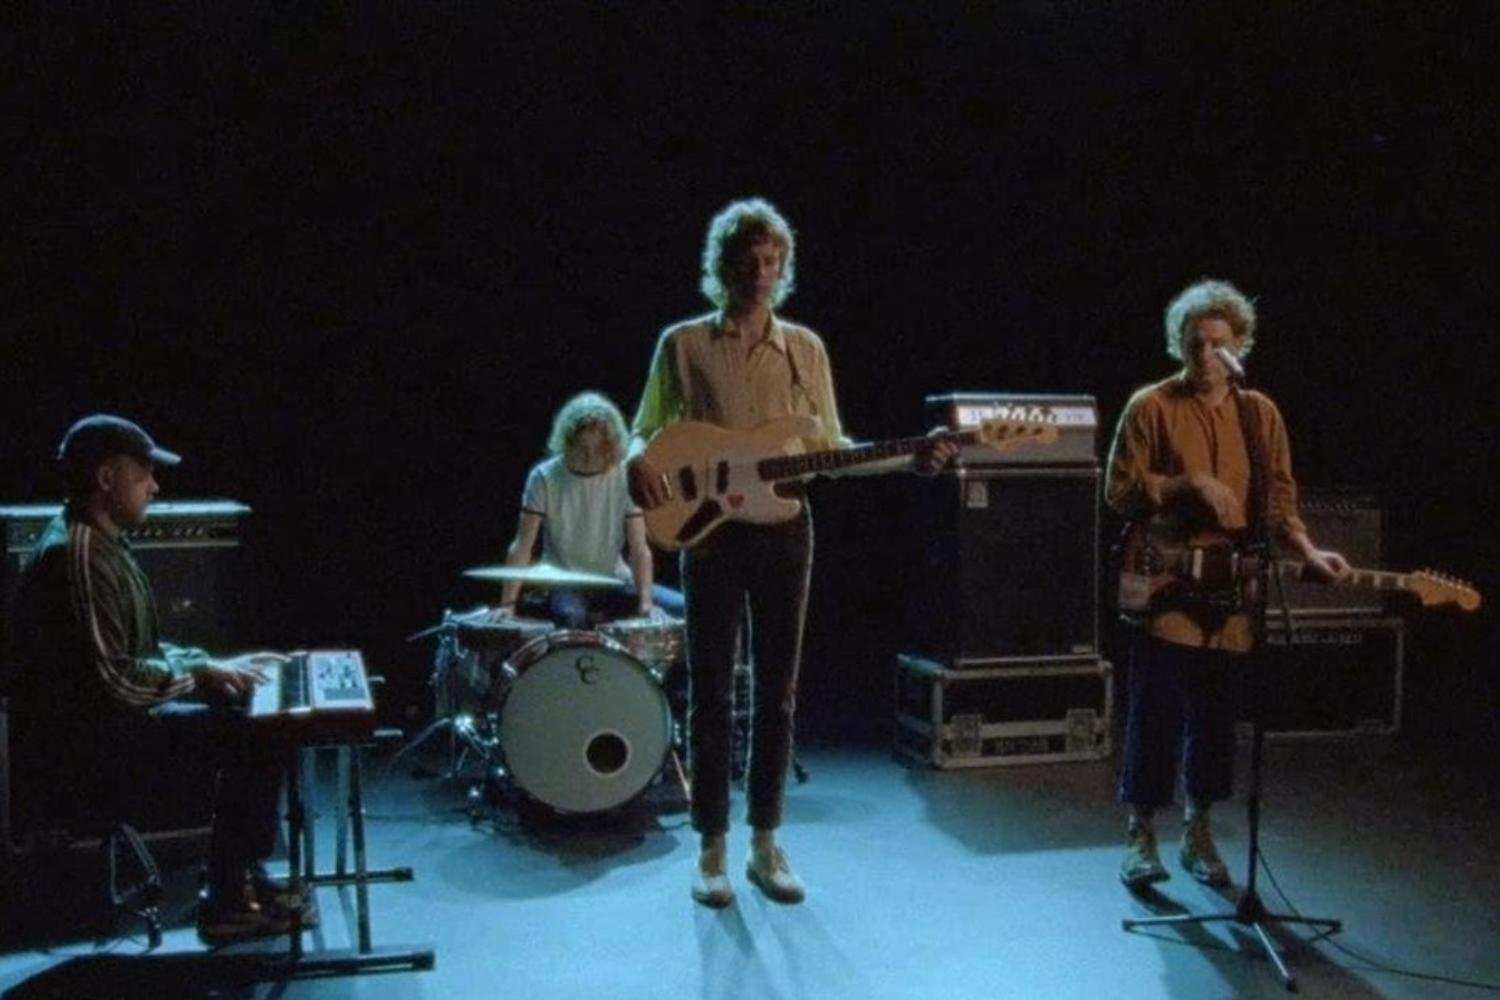 Methyl Ethel want you to 'Drink Wine' in their new video